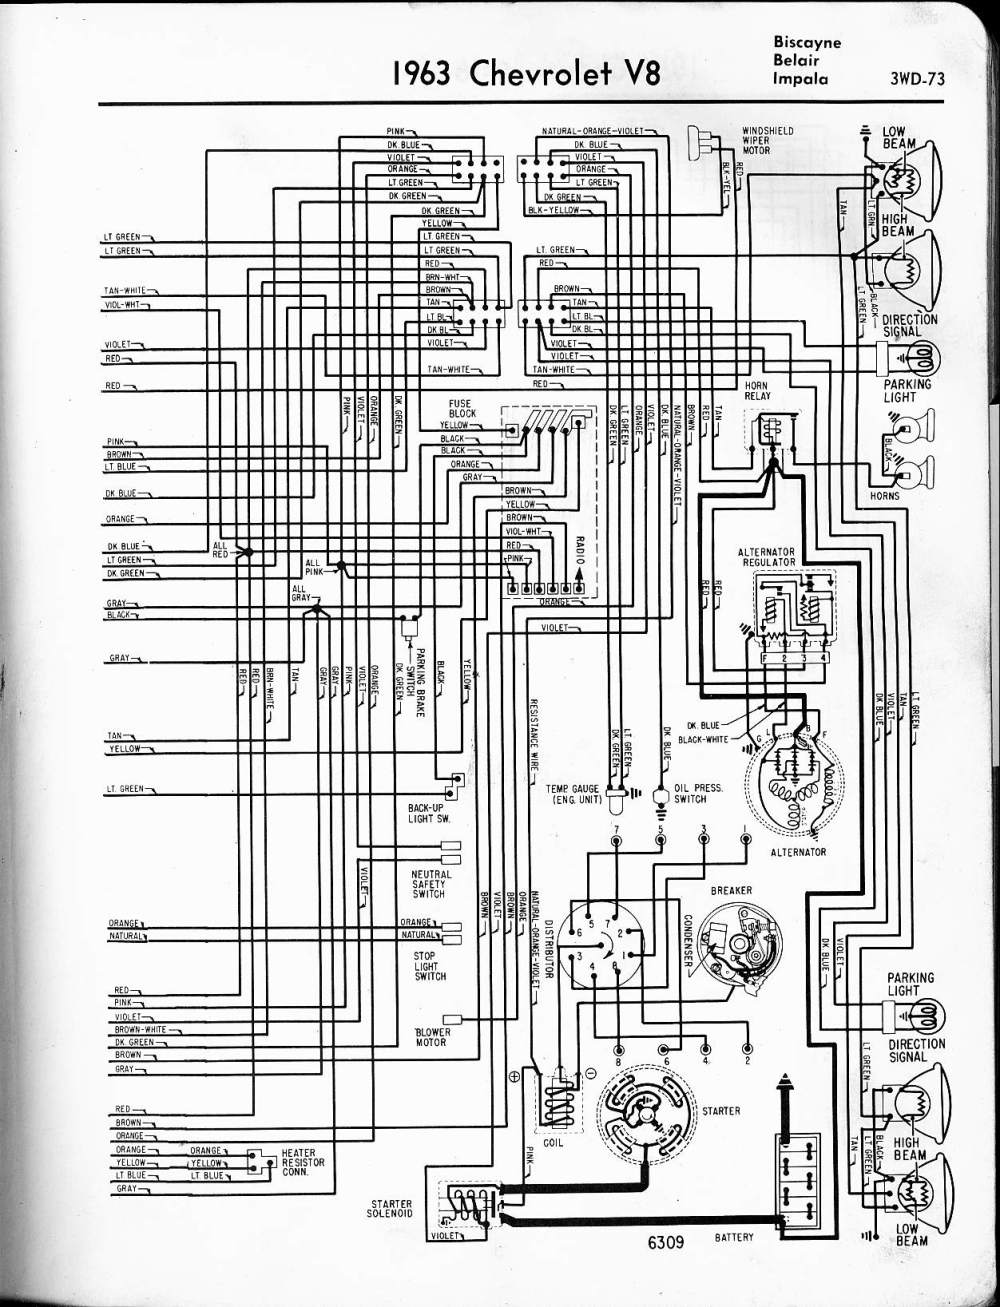 medium resolution of 57 65 chevy wiring diagrams mix 1963 v8 biscayne belair impala right